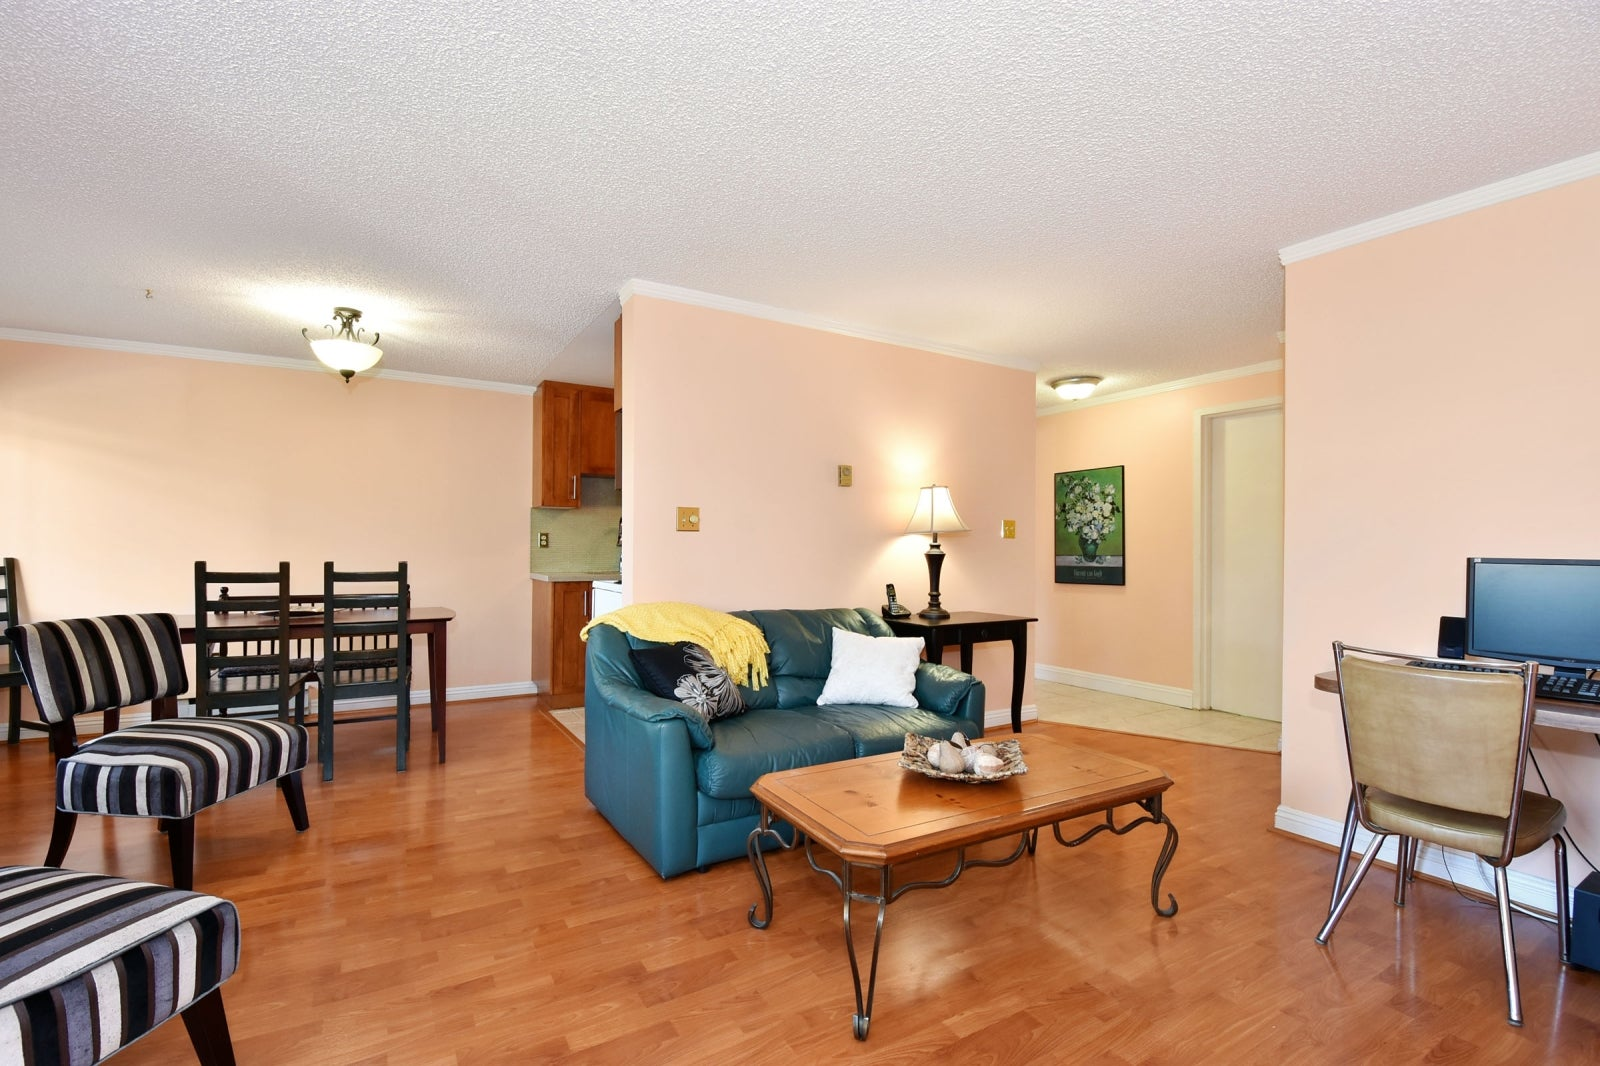 168 7293 MOFFATT ROAD - Brighouse South Apartment/Condo for sale, 2 Bedrooms (R2261480) #5